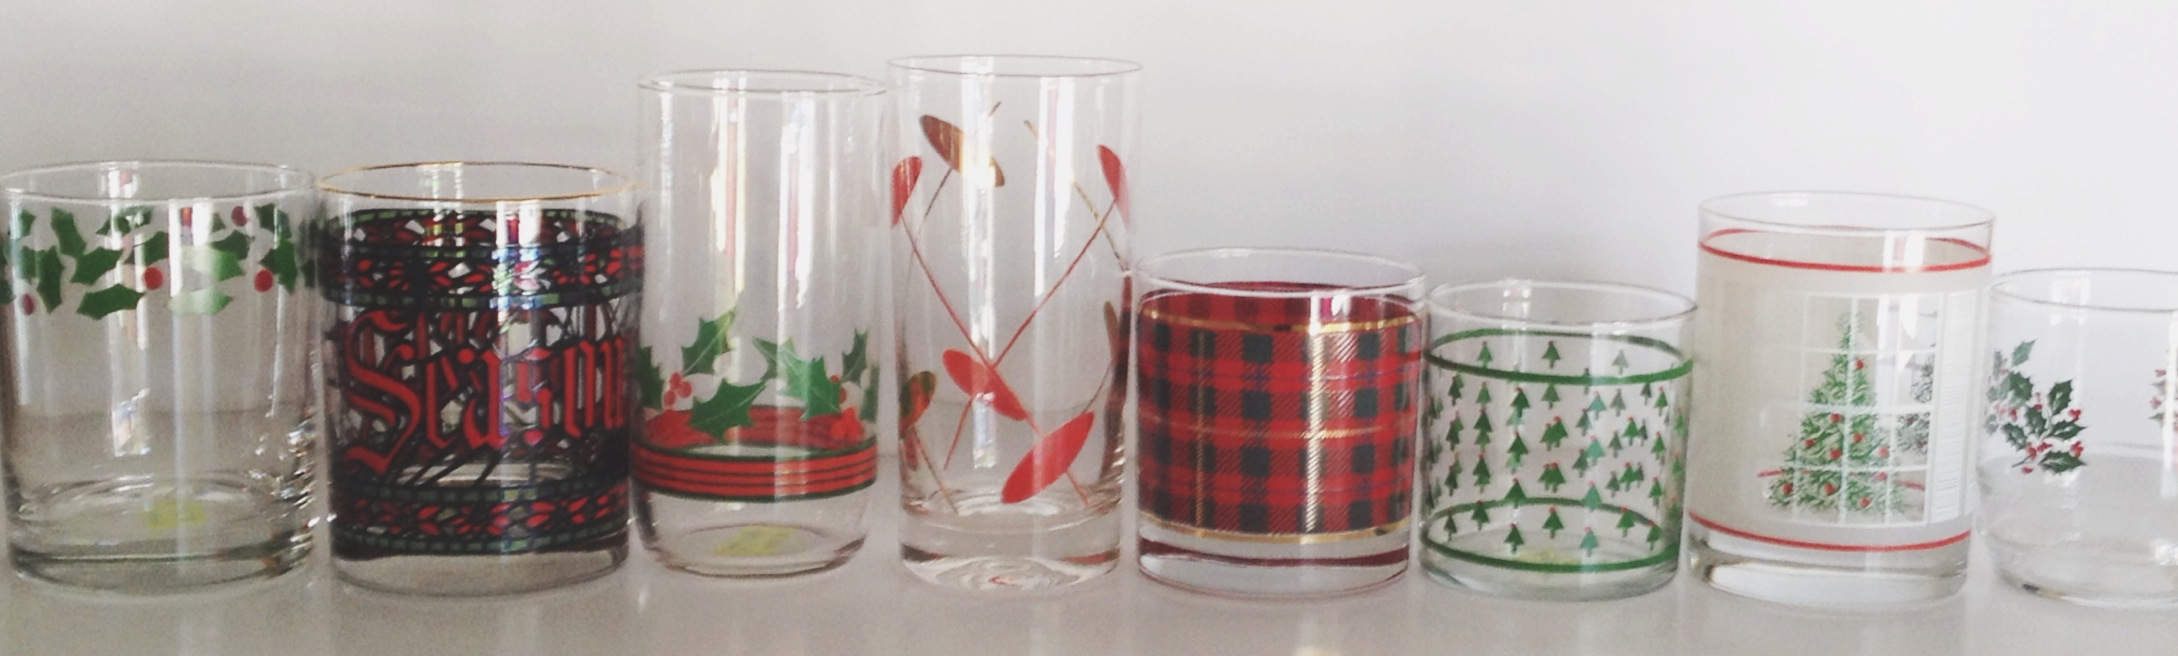 retro-vintage-christmas-barware-glasses.jpg